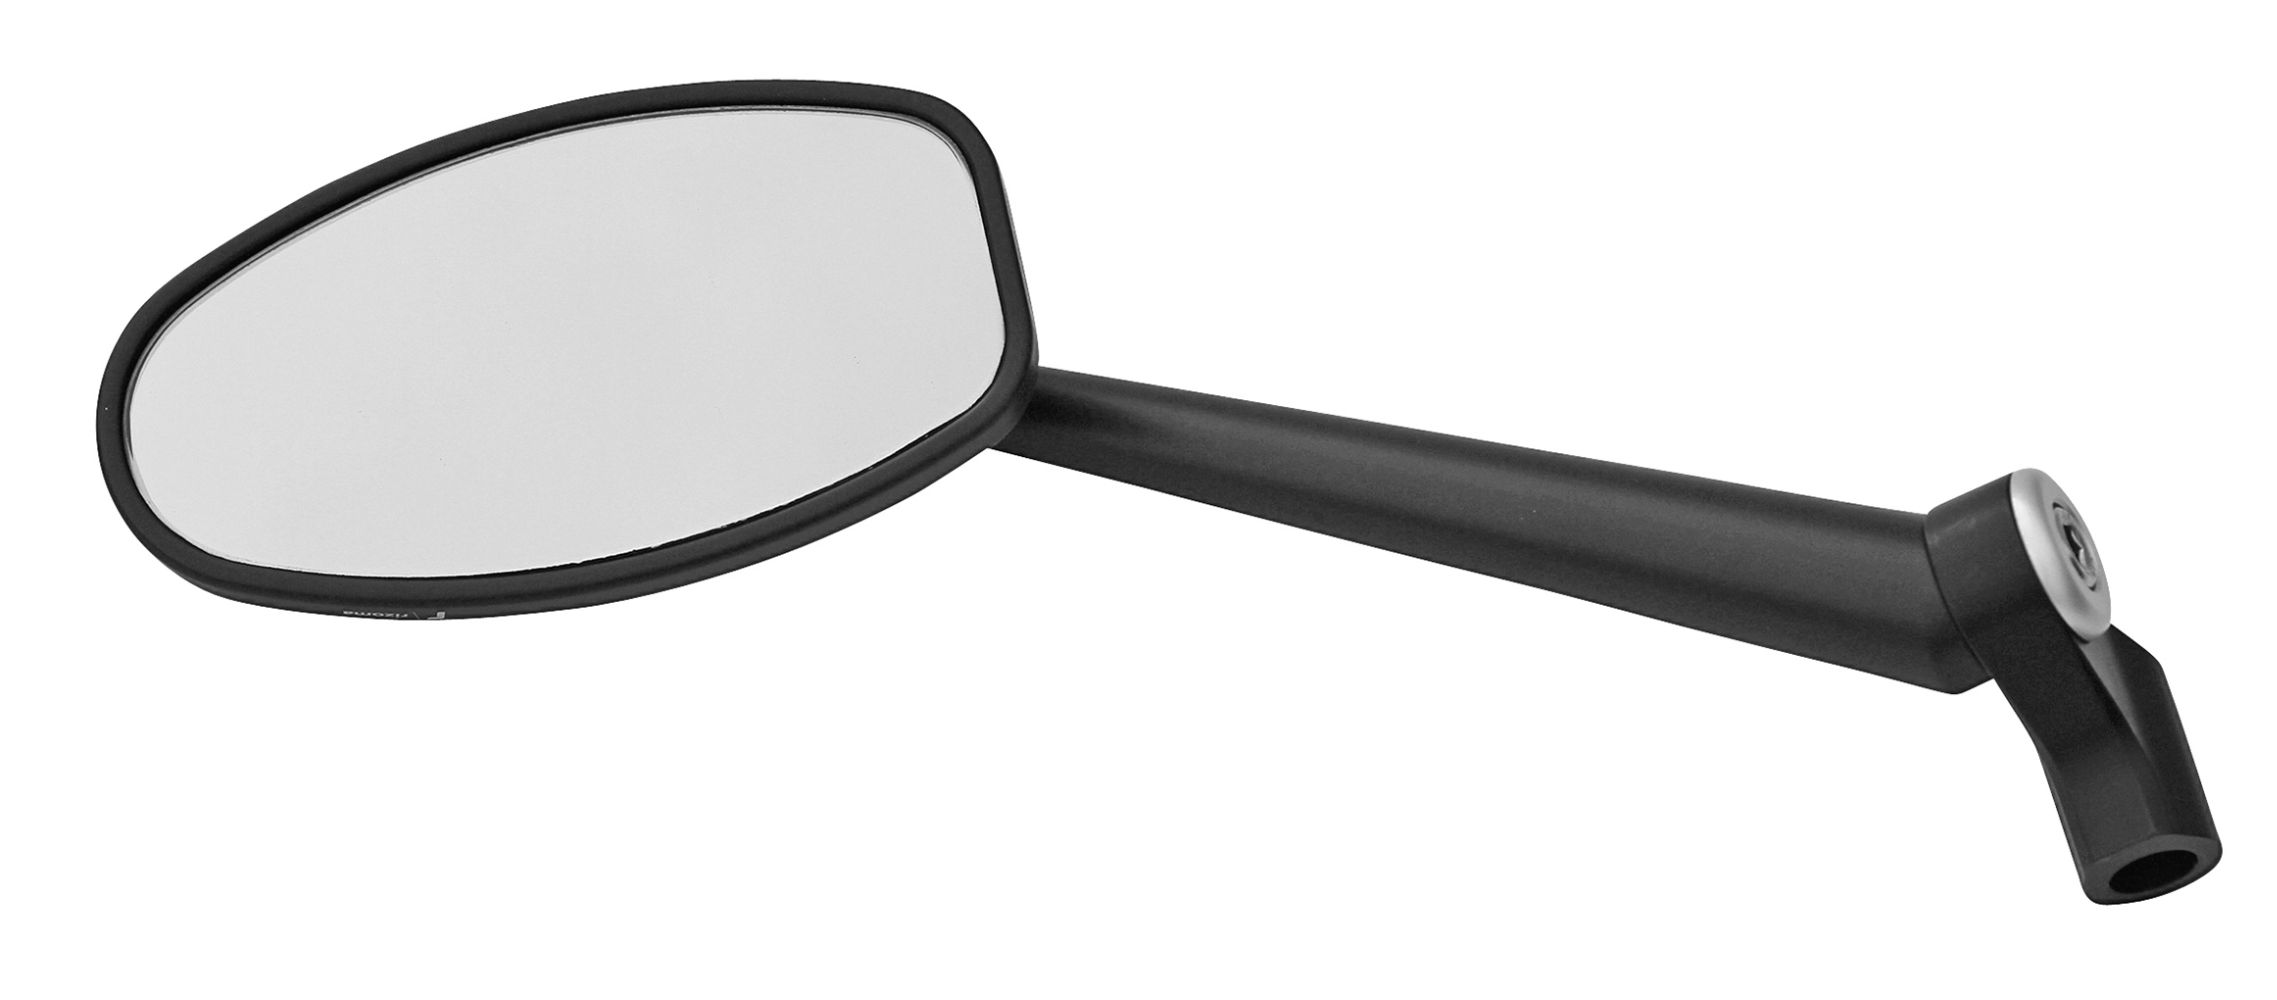 Rizoma Dynamic Motorcycle Mirror At Thunderbike Shop